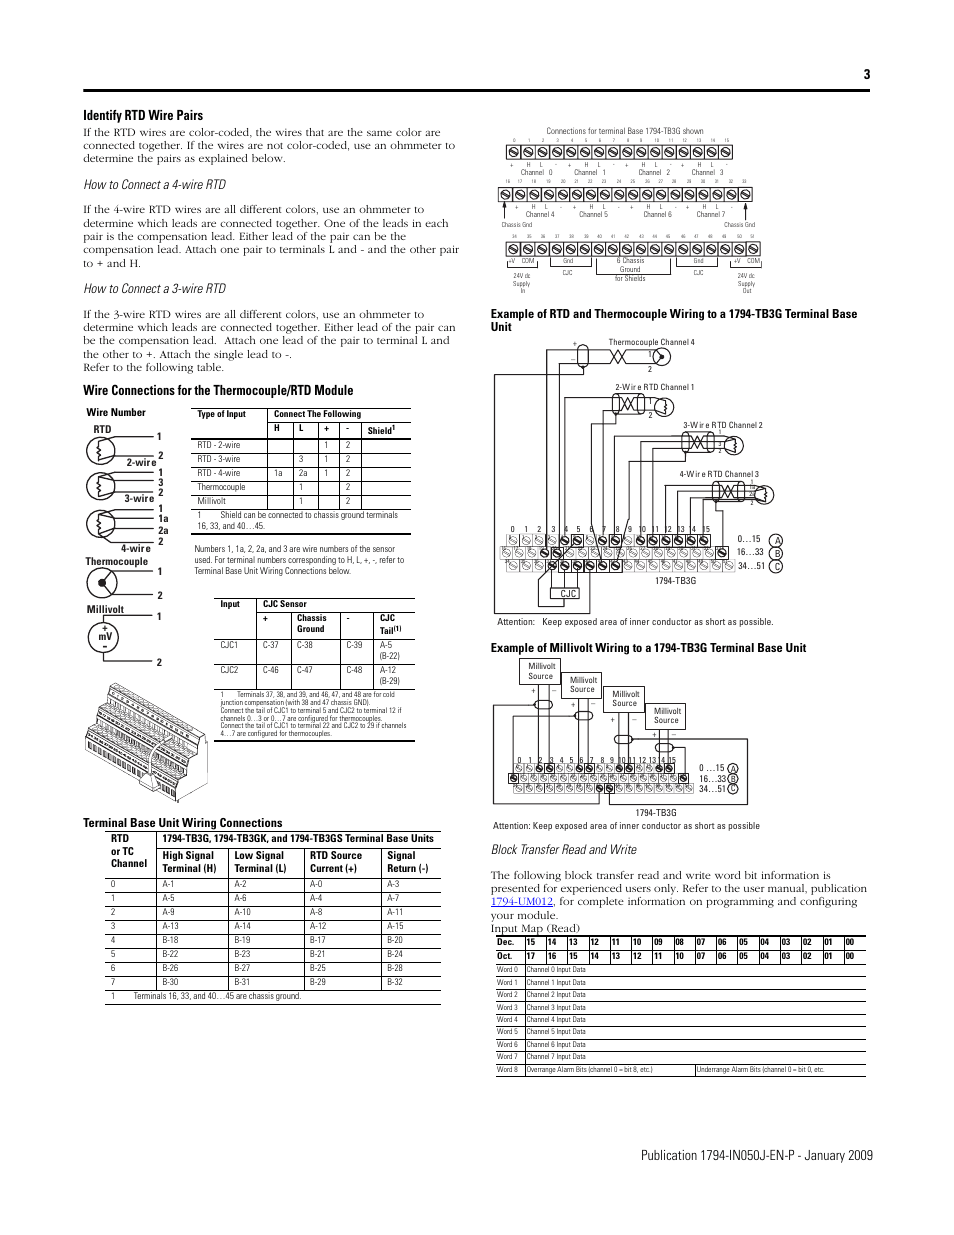 medium resolution of wire connections for the thermocouple rtd module how to connect a 4 wire rtd how to connect a 3 wire rtd rockwell automation 1794 irt8xt b tc mv rtd